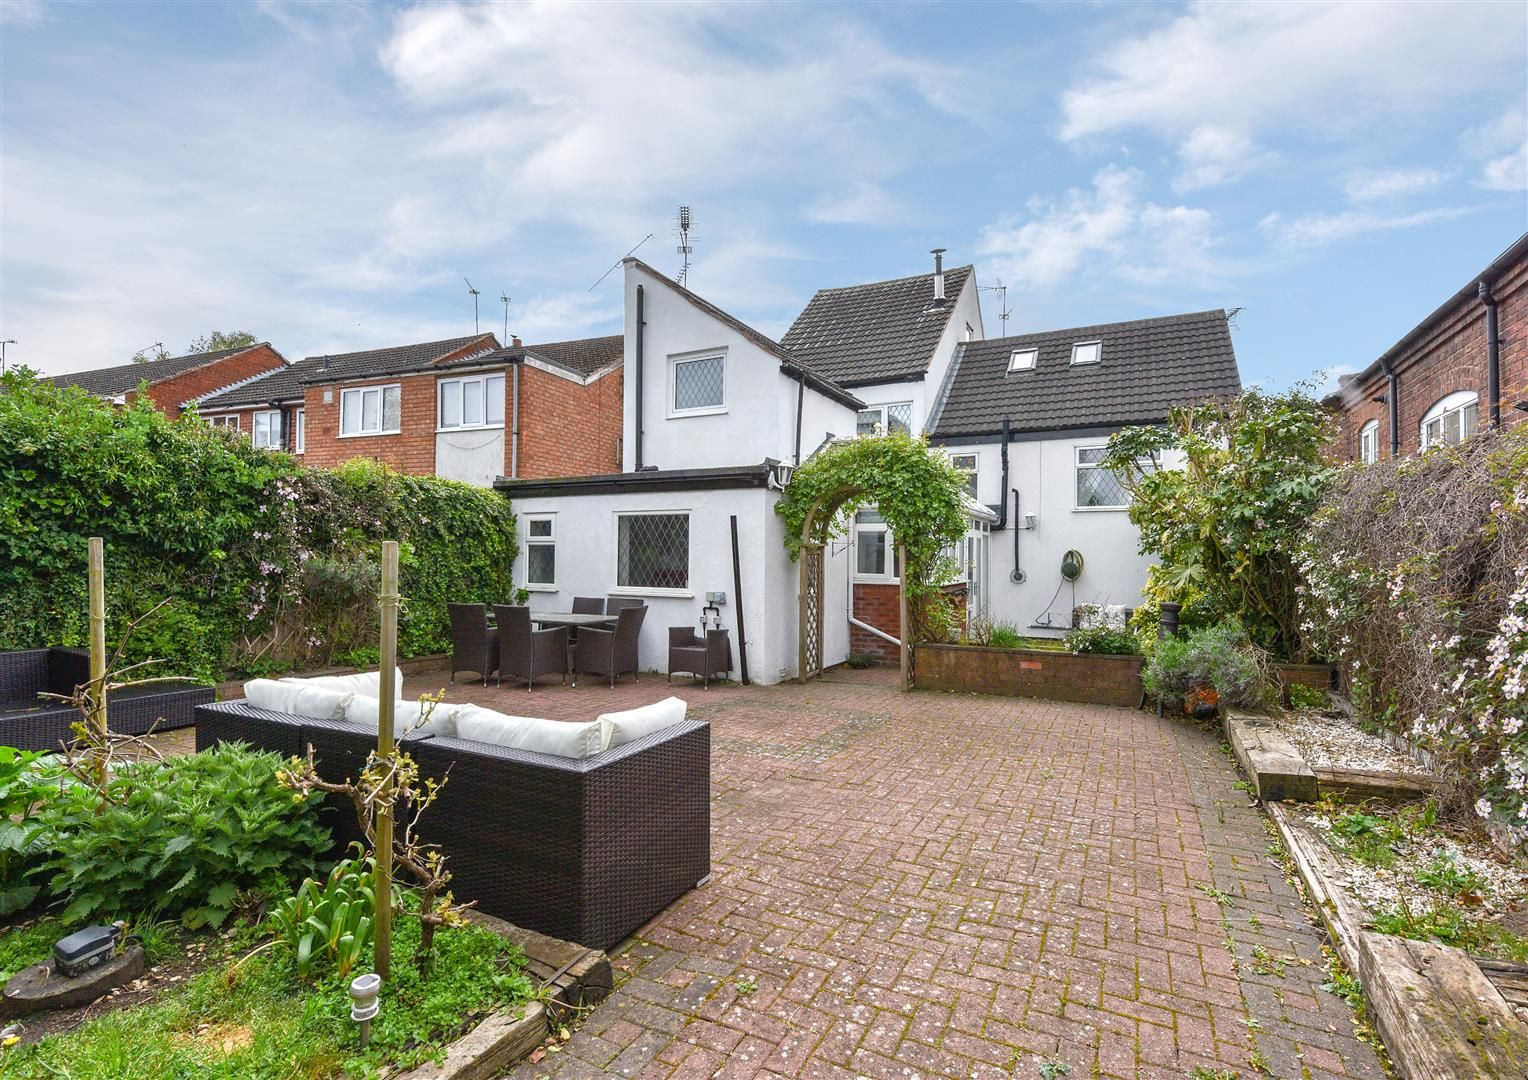 4 bed detached for sale in Swindon  - Property Image 23